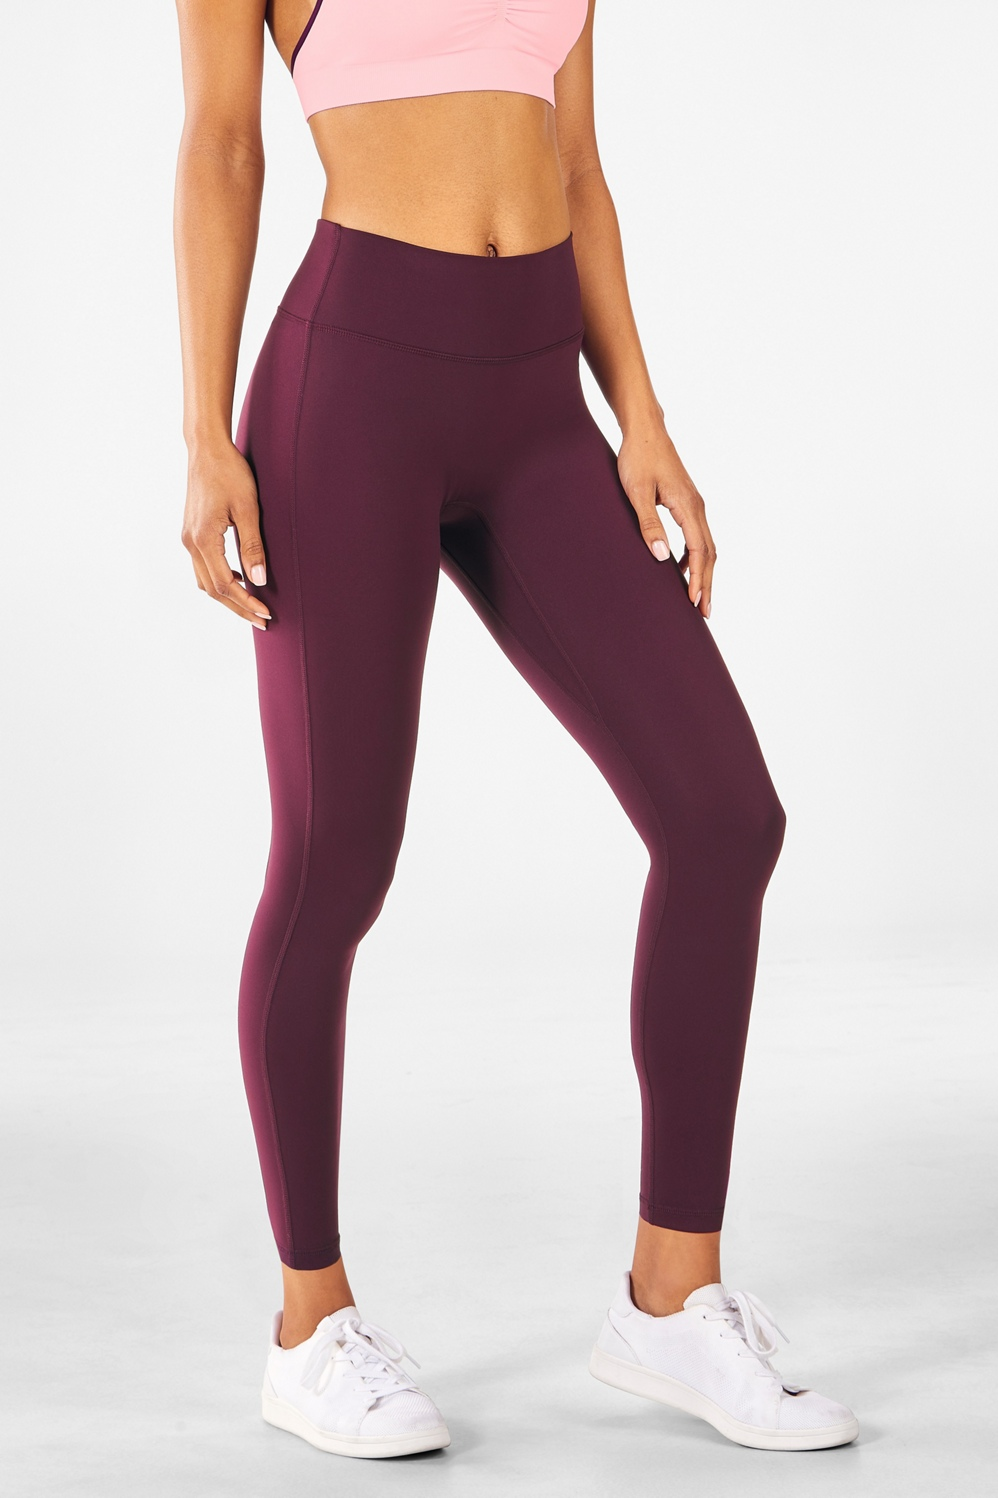 Trinity High Waisted Pocket Legging New Members Get 2 For 24